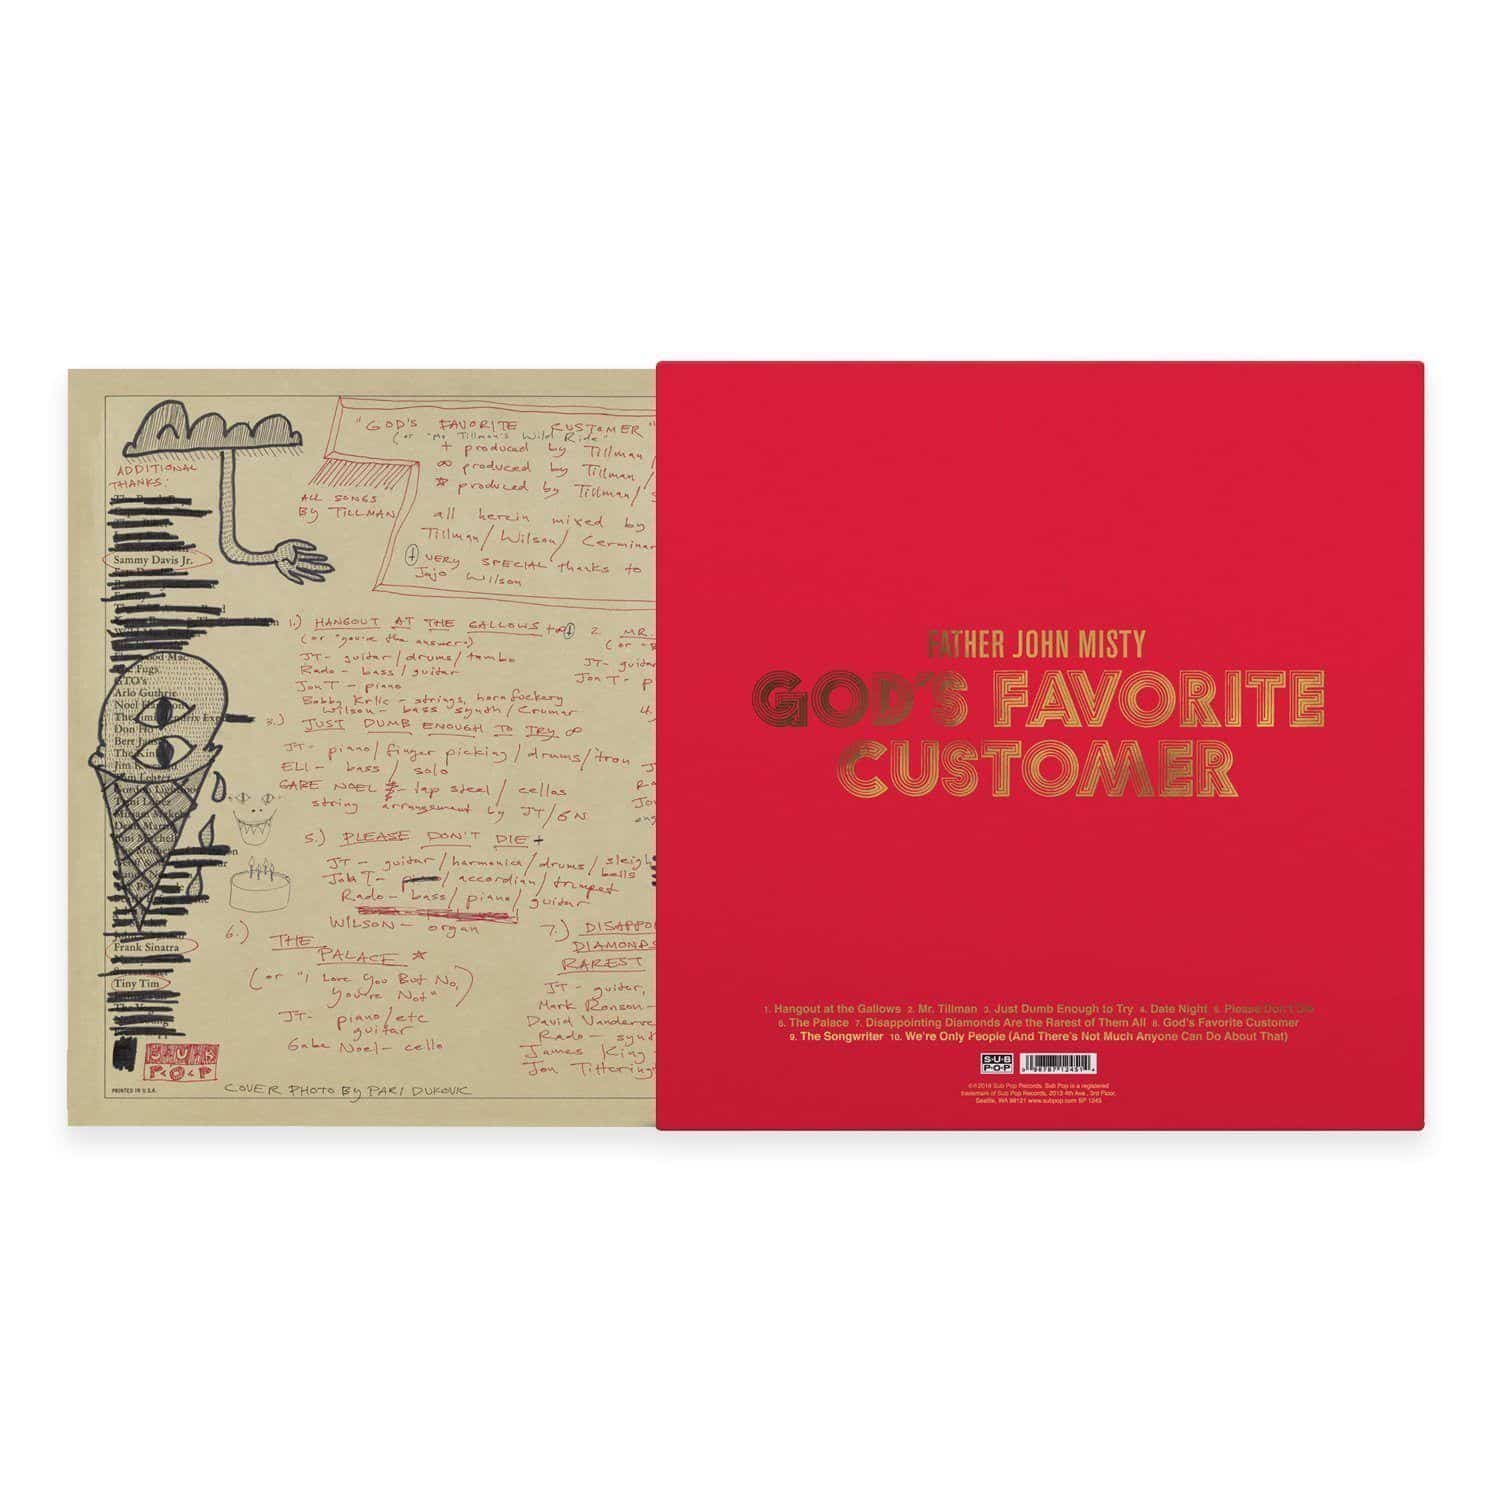 'God's Favorite Customer' Standard Vinyl LP